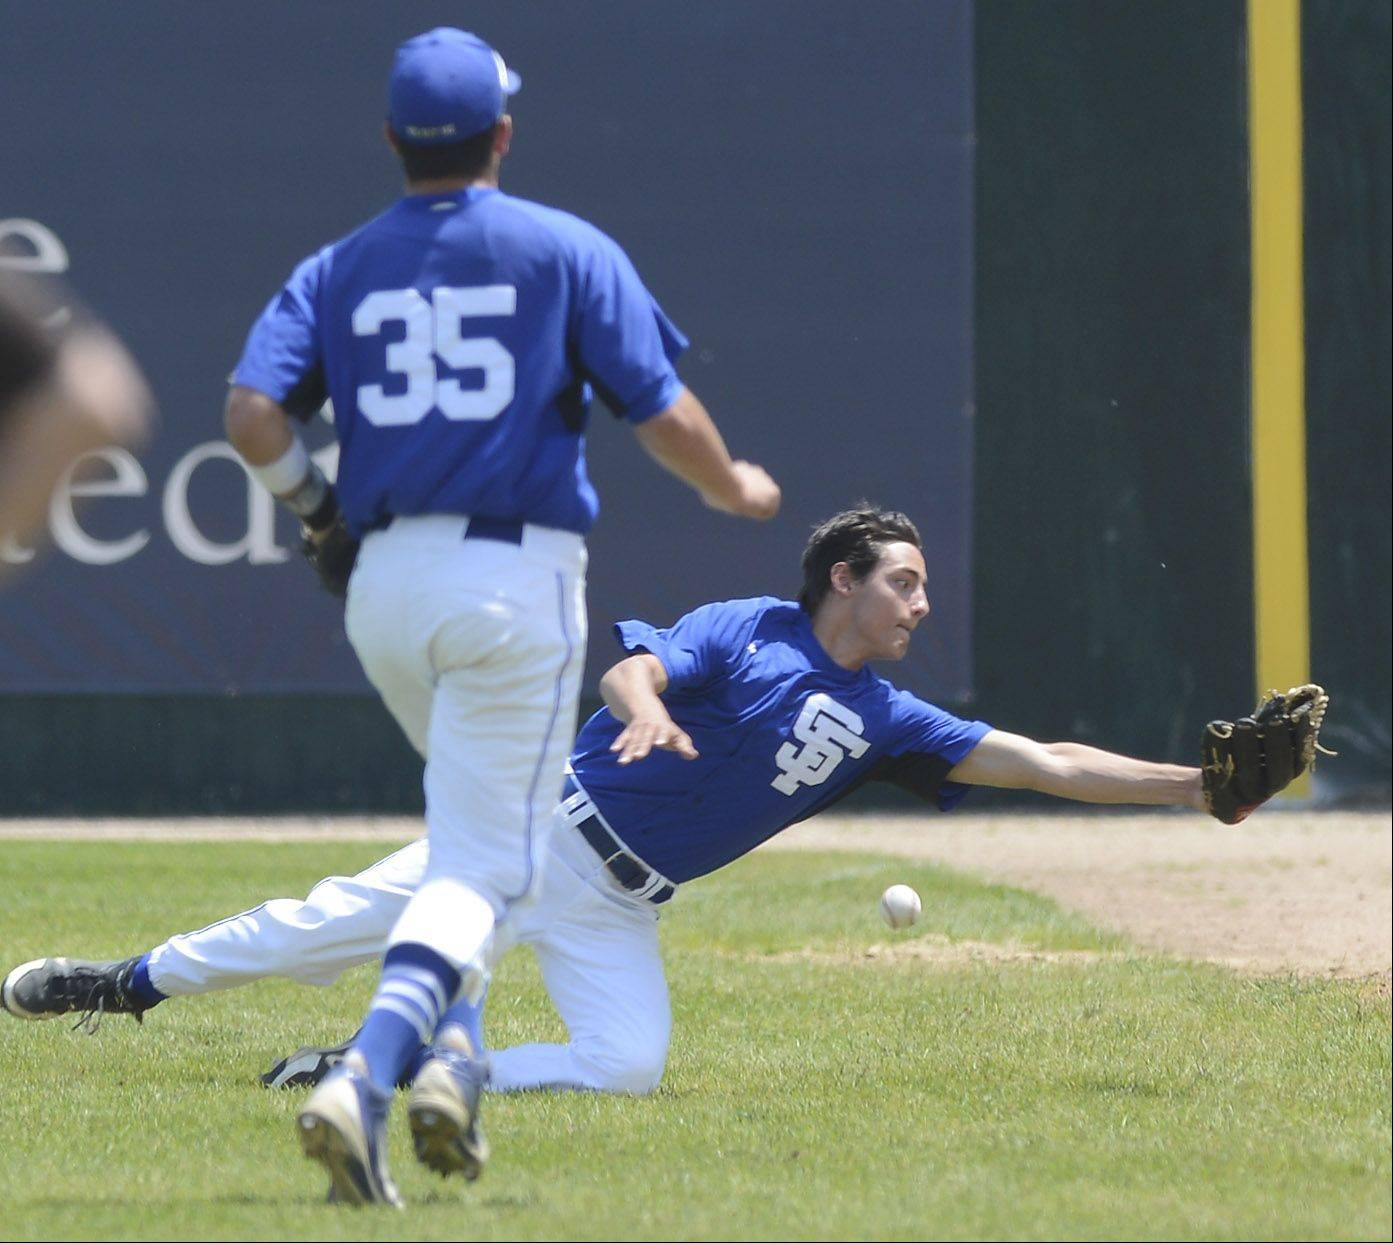 St. Francis right fielder Nick Dama makes a diving attempt on a foul ball as first baseman Josh Croci runs to help during the Class 3A state baseball championship game against Joliet Catholic at Silver Cross Field in Joliet Saturday.